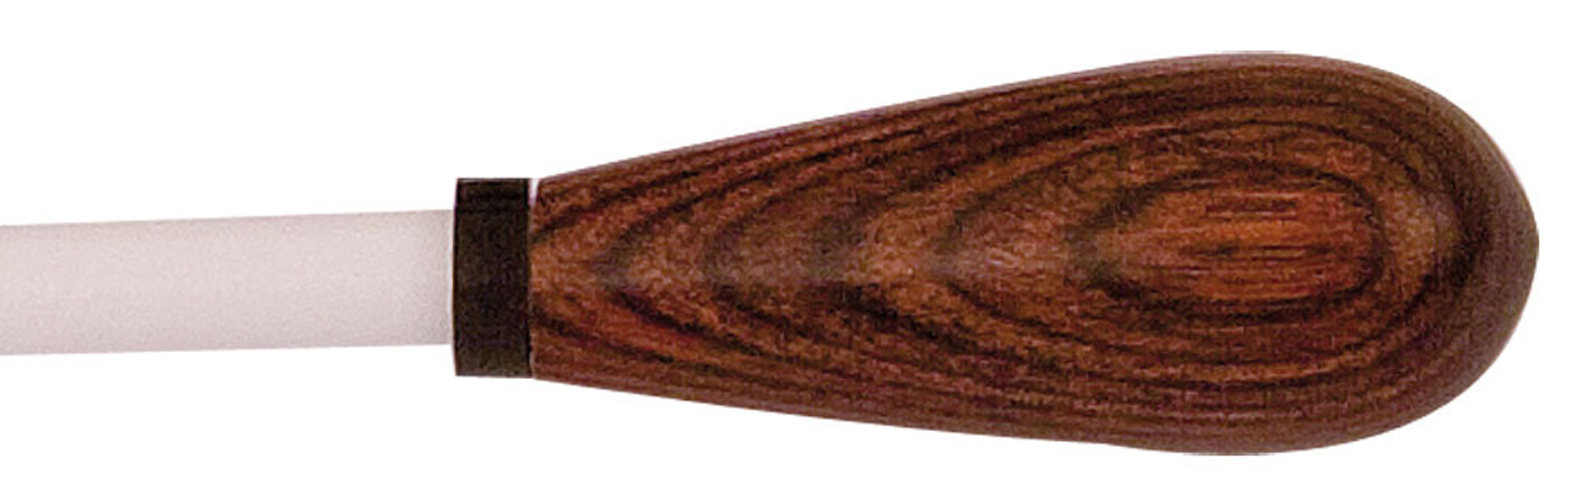 Baton Pear Shaped Handle Rosewood